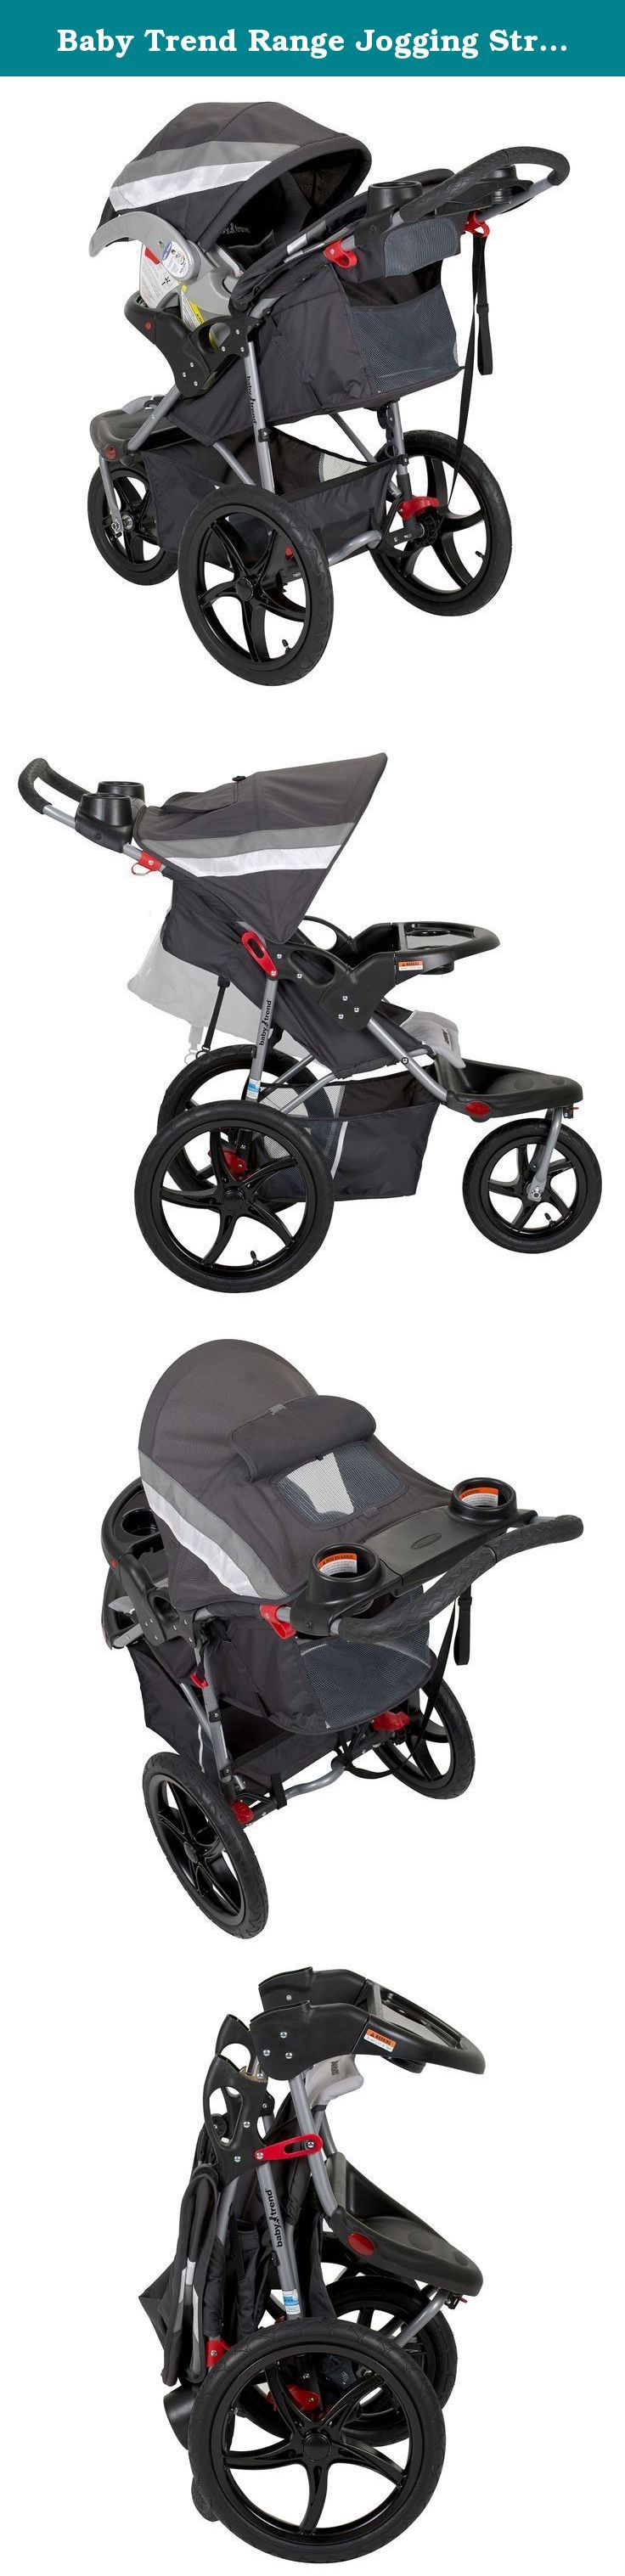 Baby Trend Range Jogging Stroller, Liberty. The Baby Trend Range Jogger switches from running to resting in no time! Locks and unlocks quickly and easily. Safe and secure when you've stopped; easy to maneuver when you're out for a jog. Multi-position, reclining padded seat and fully adjustable 5-point safety harness and tether strap.